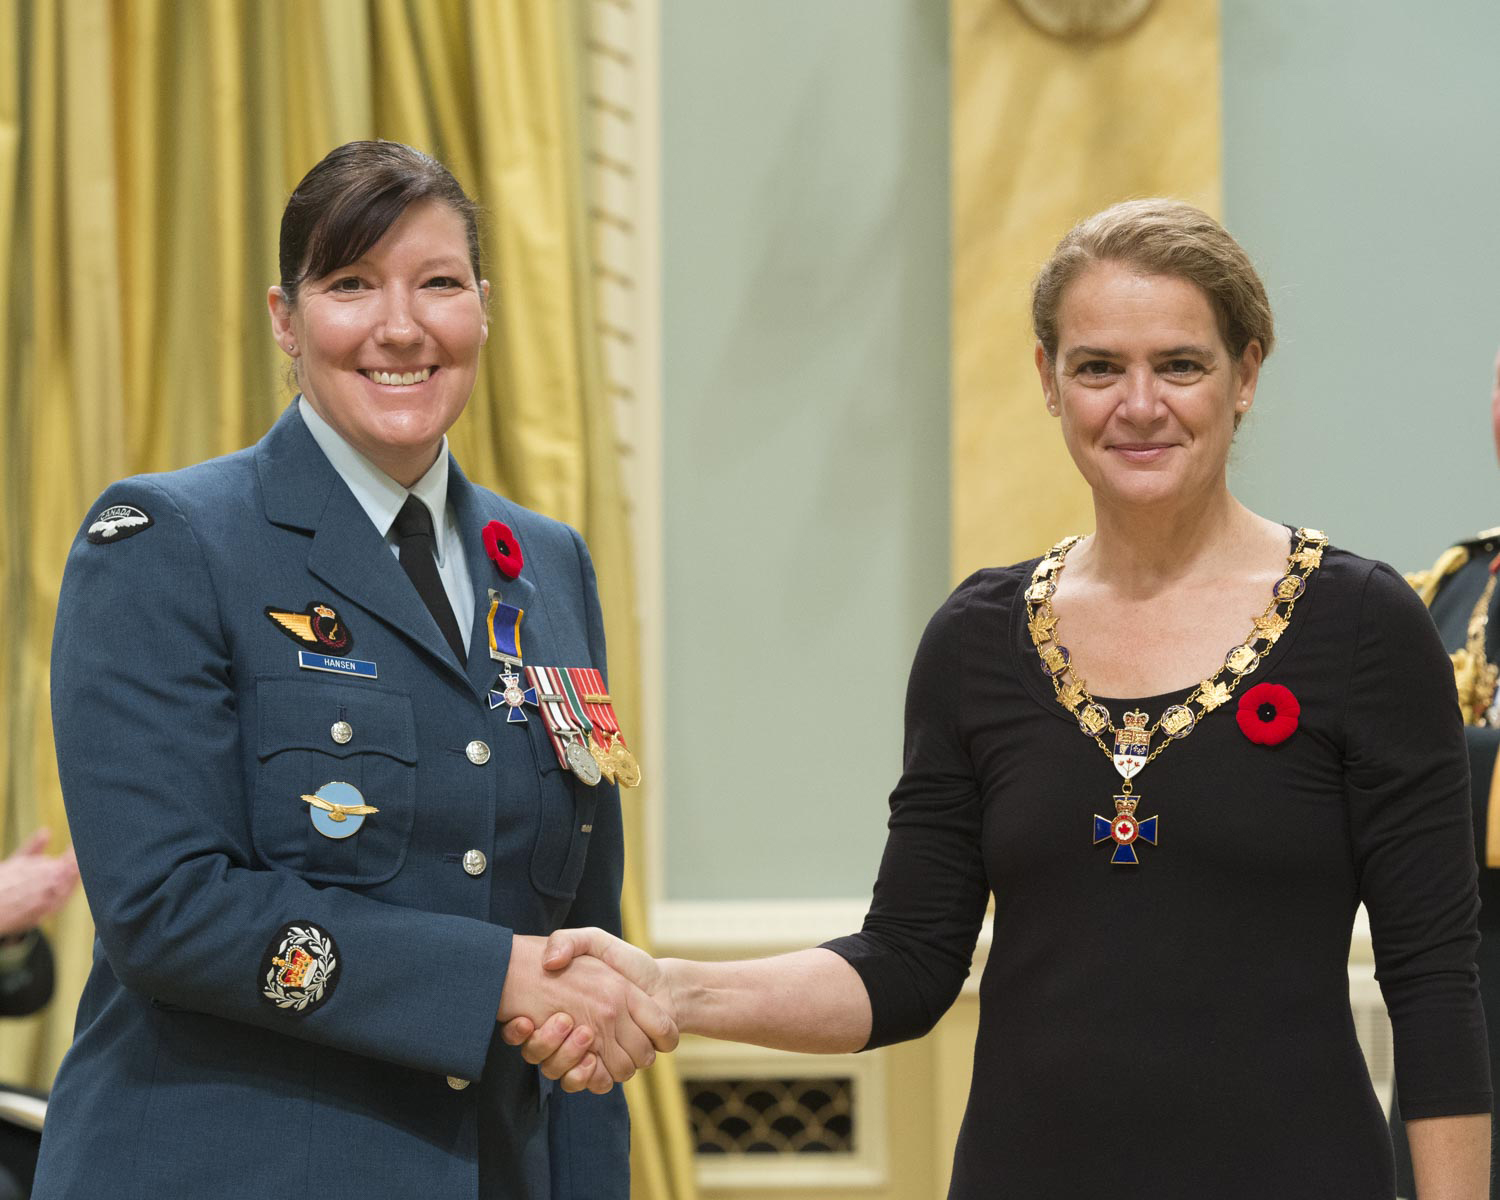 Her Excellency presented the Order of Military Merit at the Member level (M.M.M.) to Warrant Officer Renee Joyce Hansen, M.M.M., C.D., from the Office of Director General Military Careers, in Ottawa, Ontario.